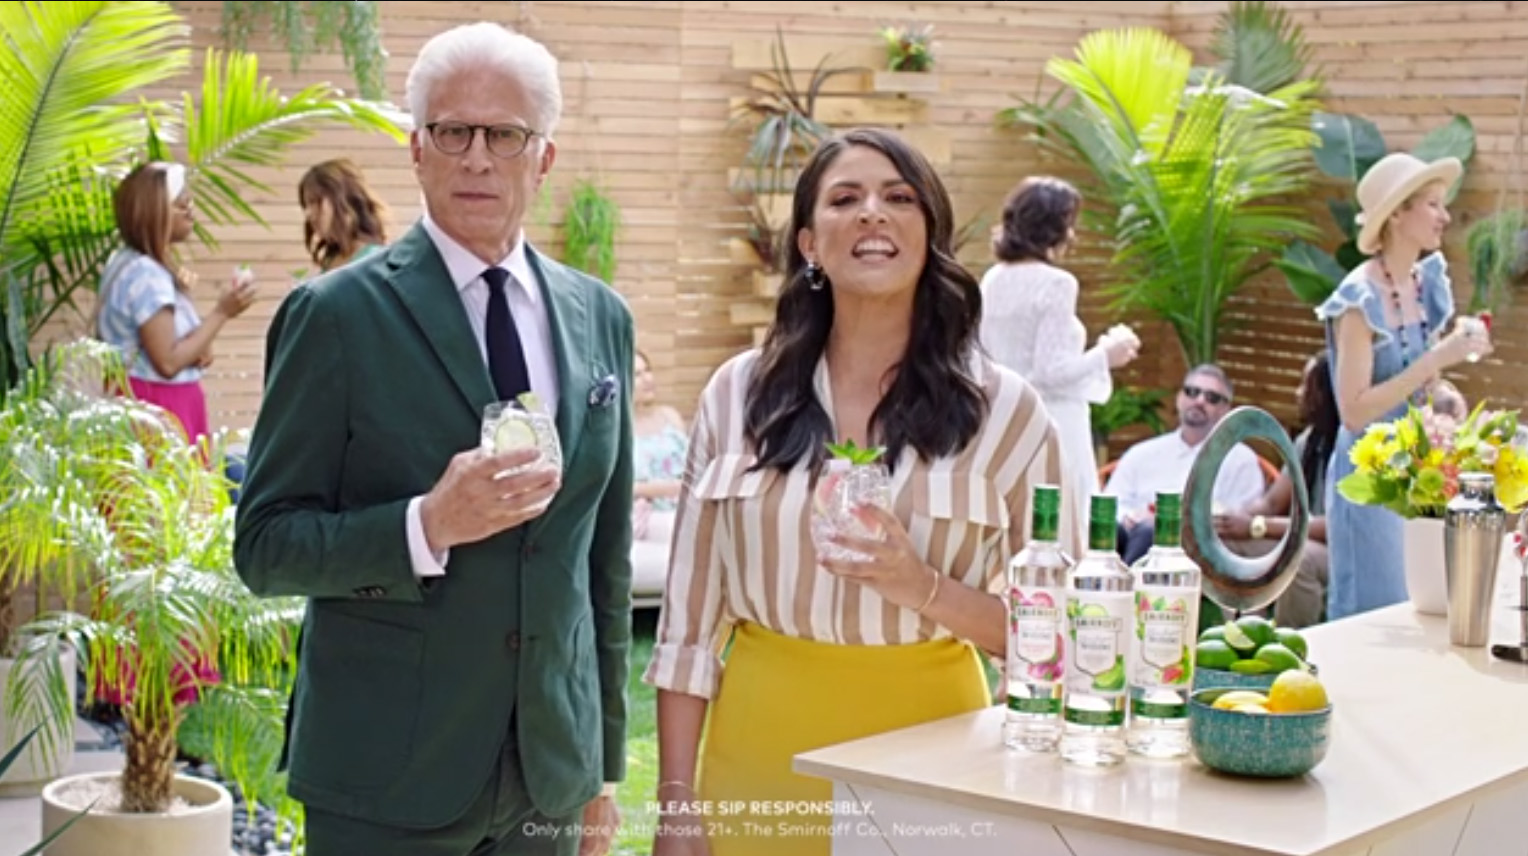 All in the Name with Ted Danson and Cecily Strong